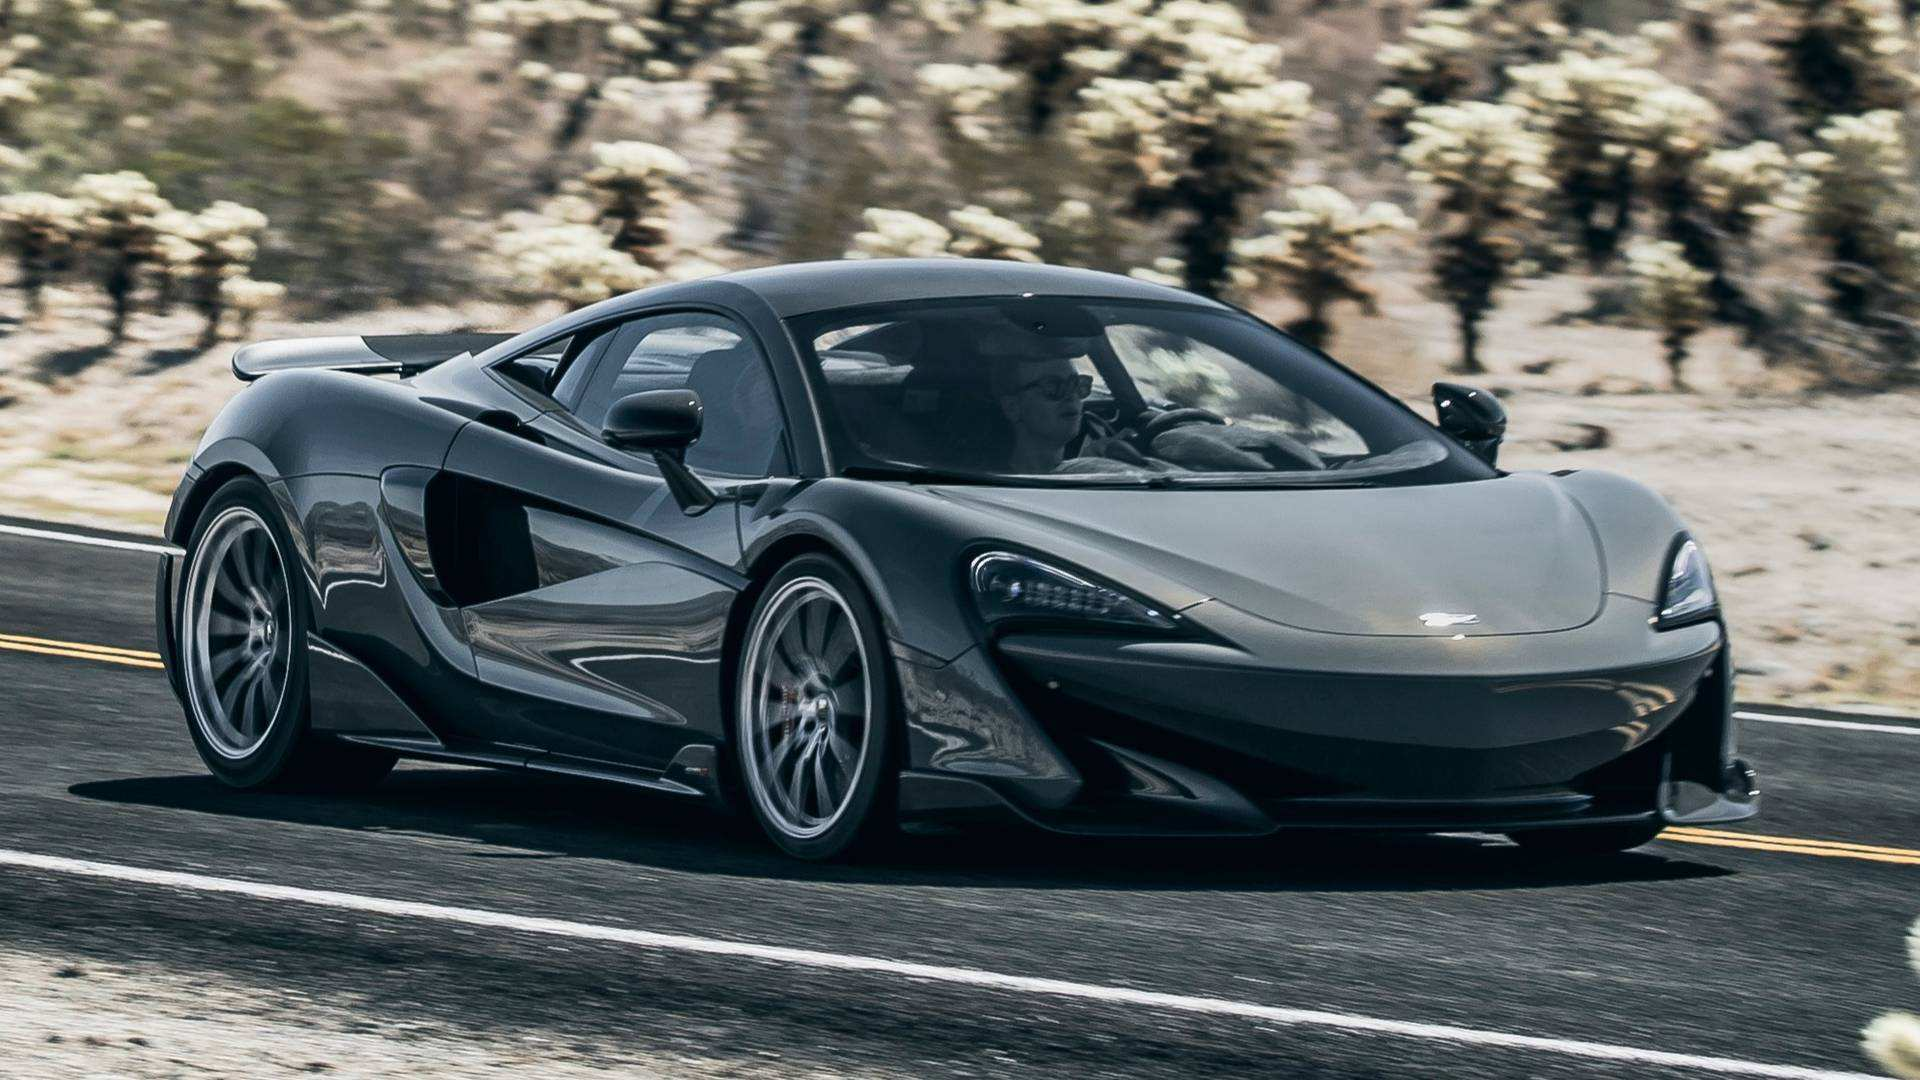 48 New 2019 Mclaren 600Lt Price and Review by 2019 Mclaren 600Lt